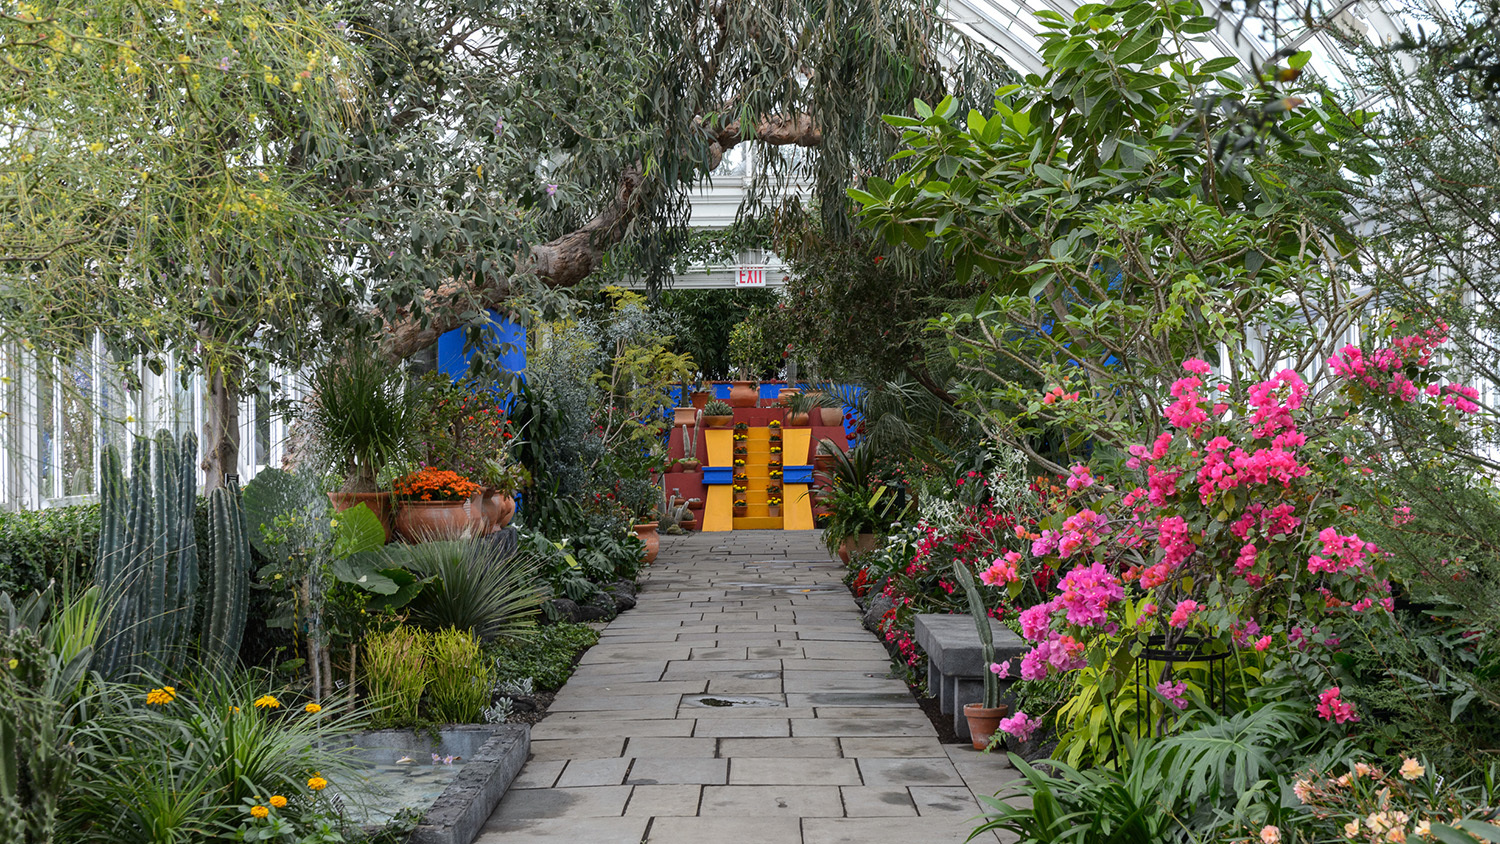 Photos from the Botanical Garden's Frida Kahlo exhibition